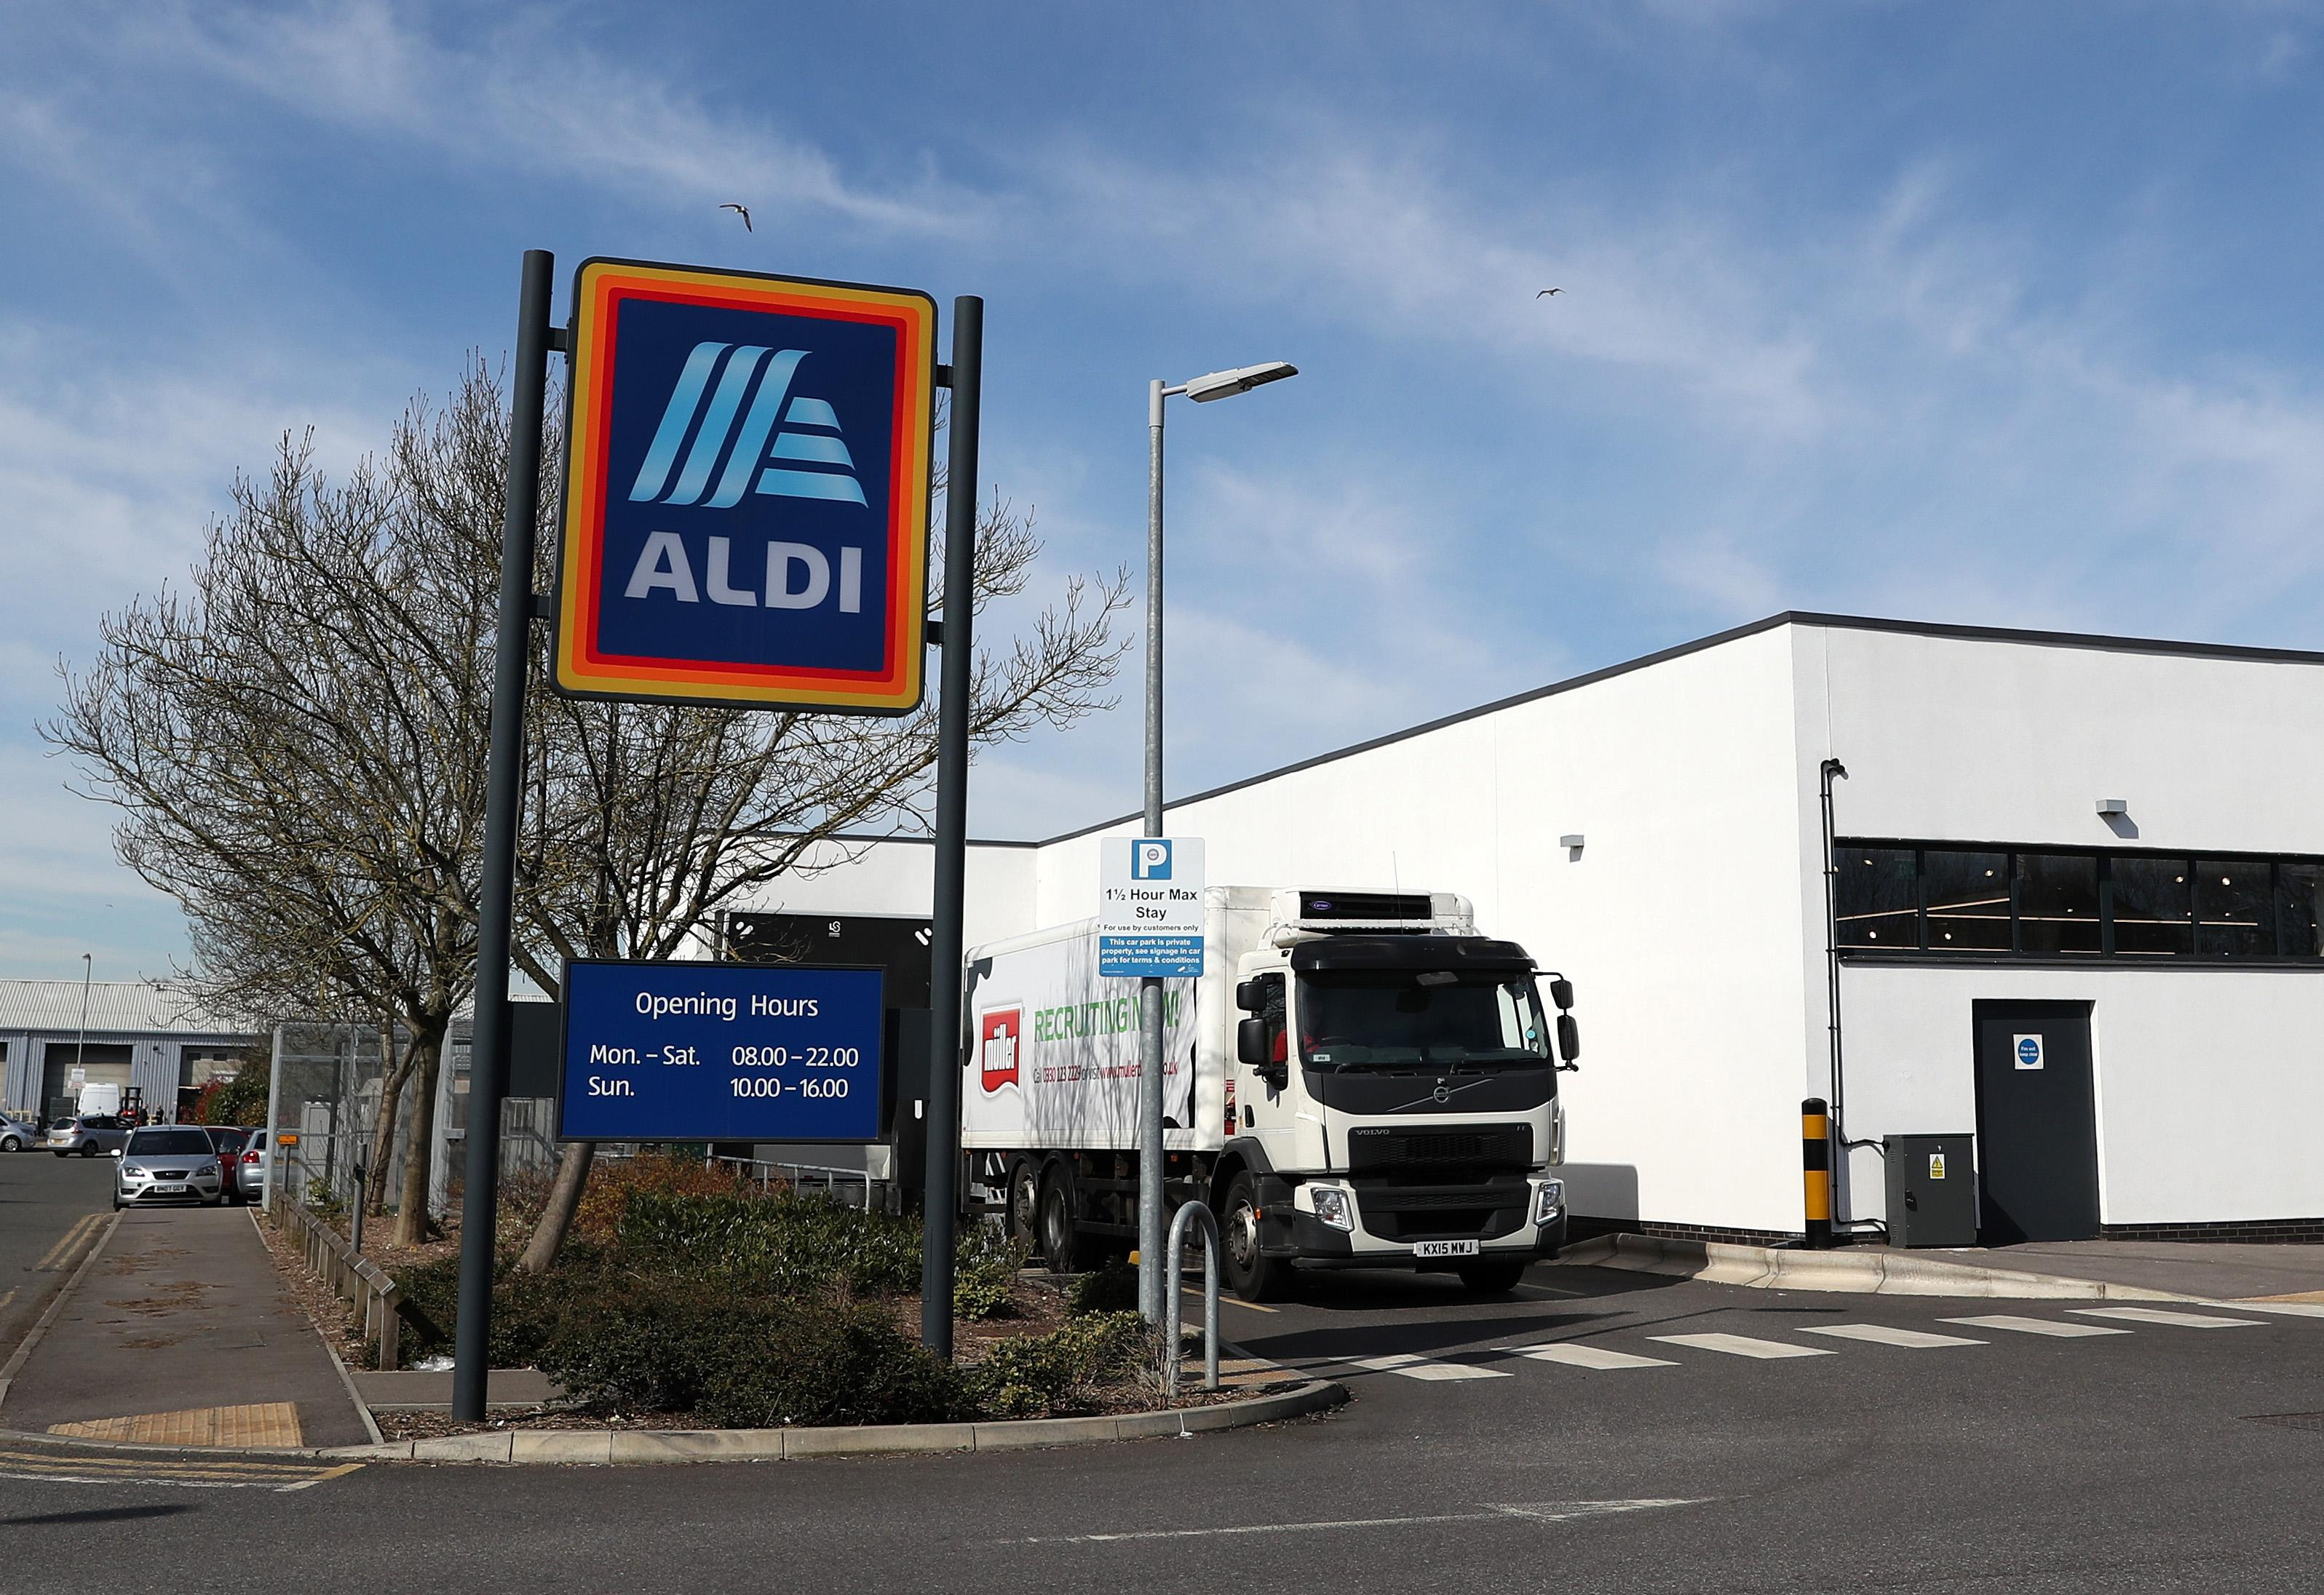 Coronavirus: Aldi gives NHS workers, fire service and police priority access to stores